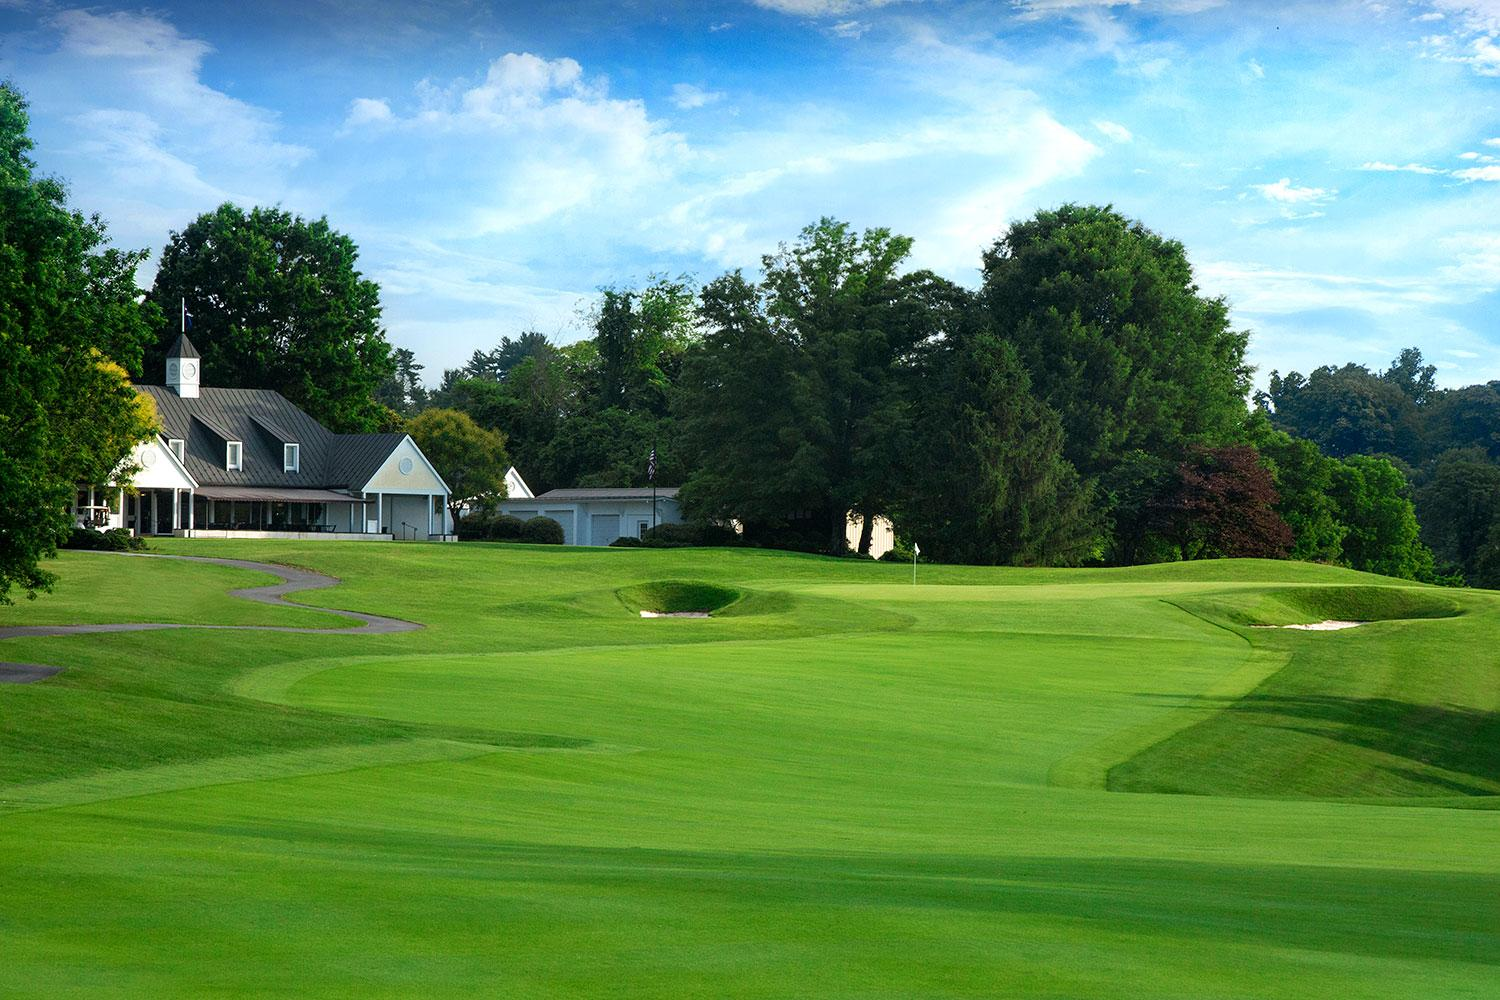 Though highly rated, the Birdwood Golf Course is among the shortest in the ACC. The redesign will make it more attractive for hosting collegiate competition.